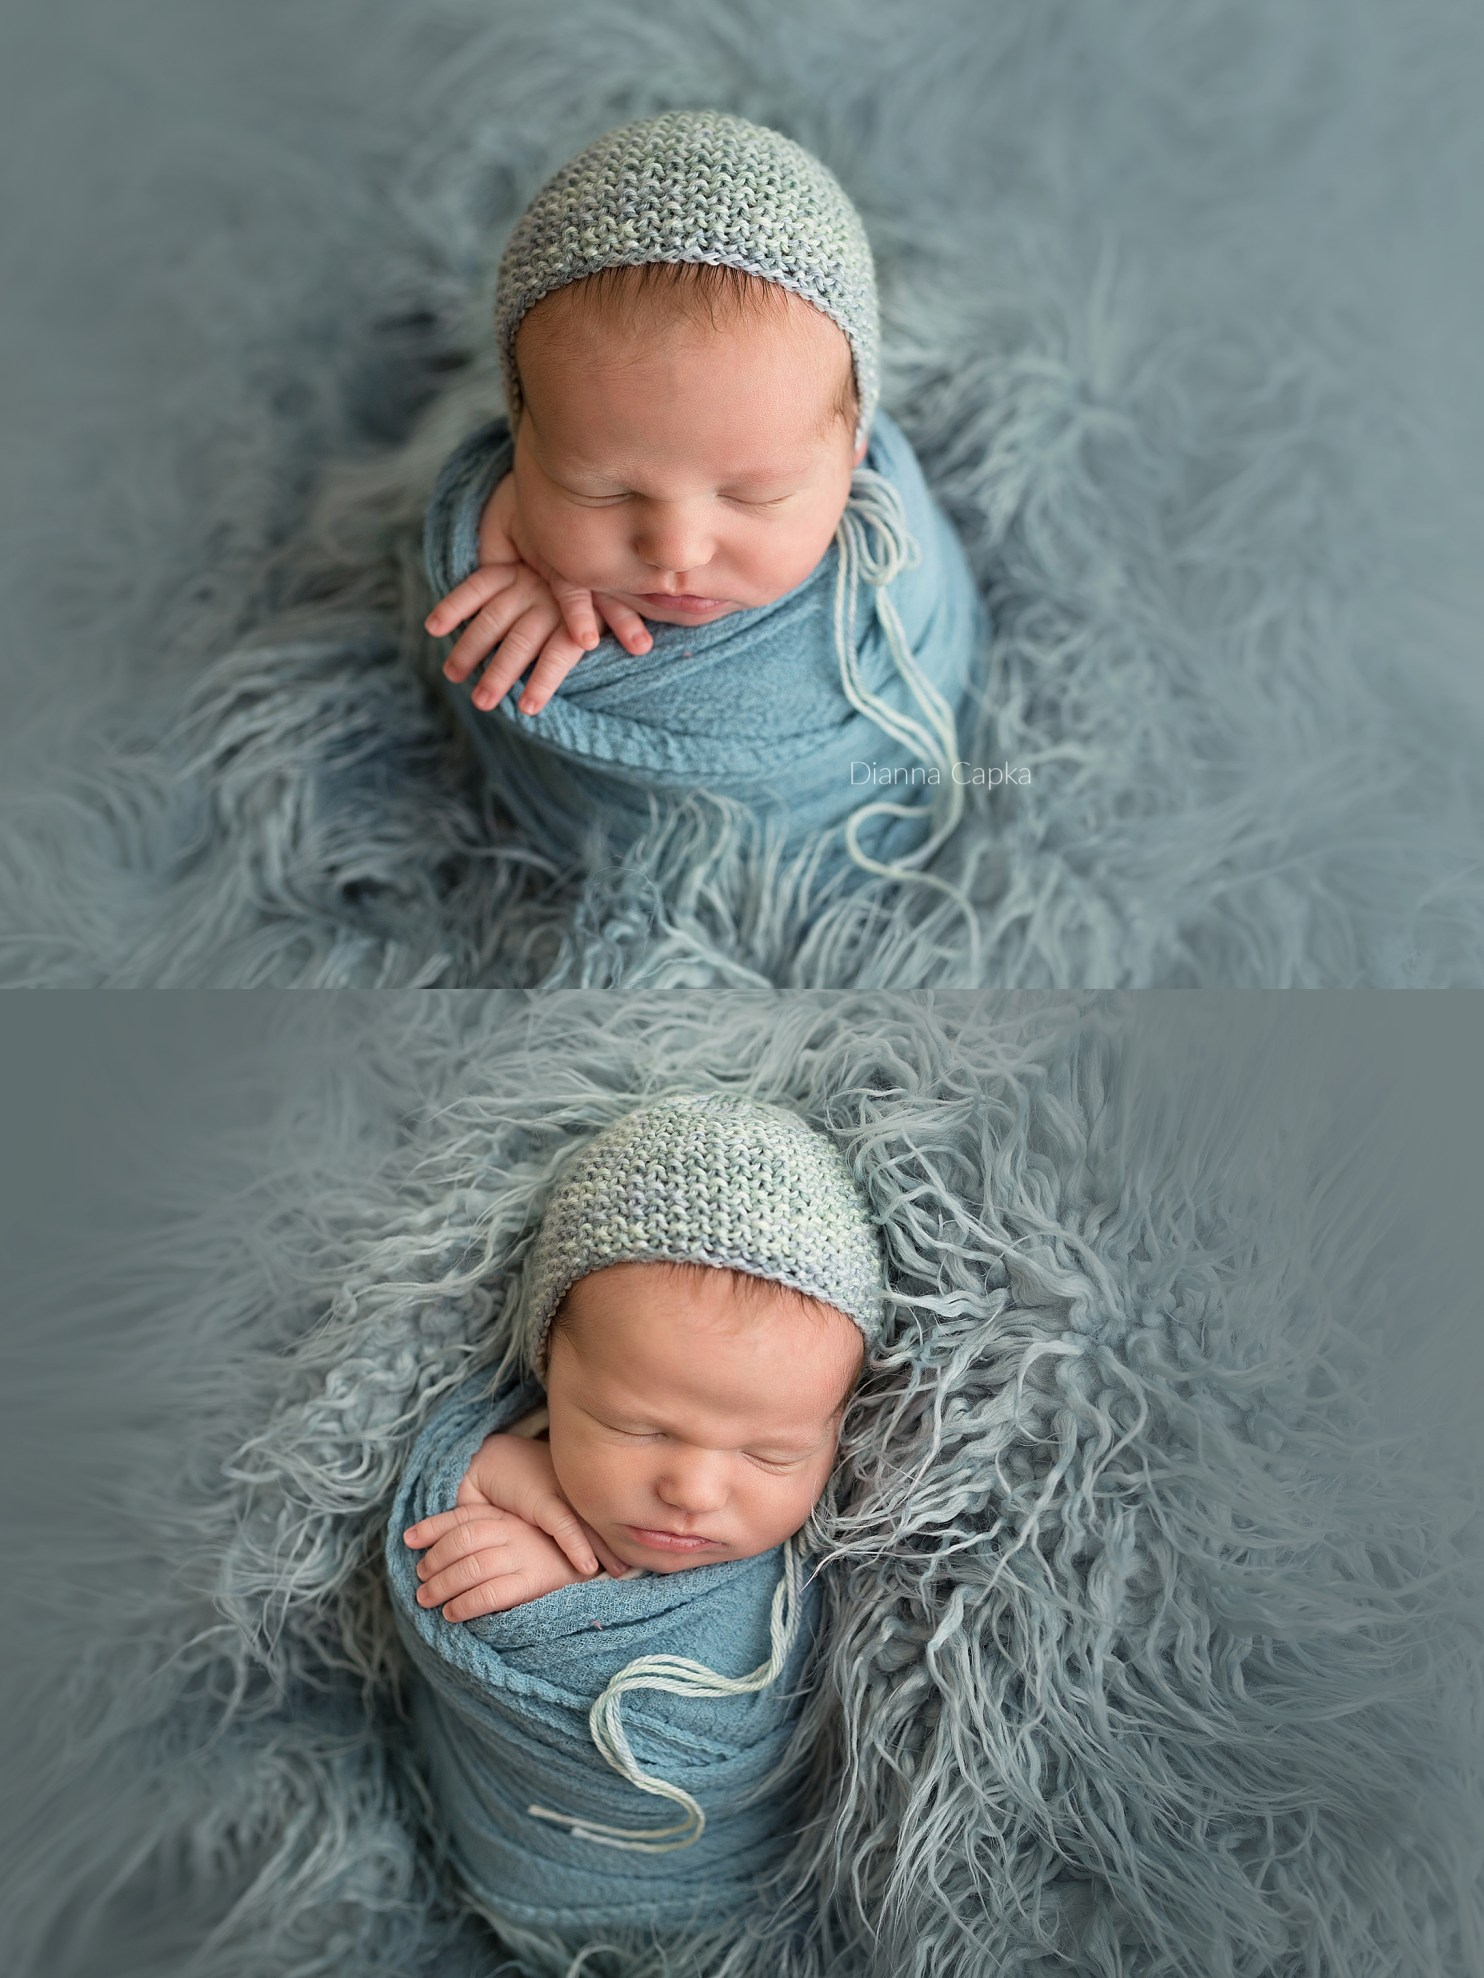 Baby boy in potato sack pose on flokati new holland newborn photographer